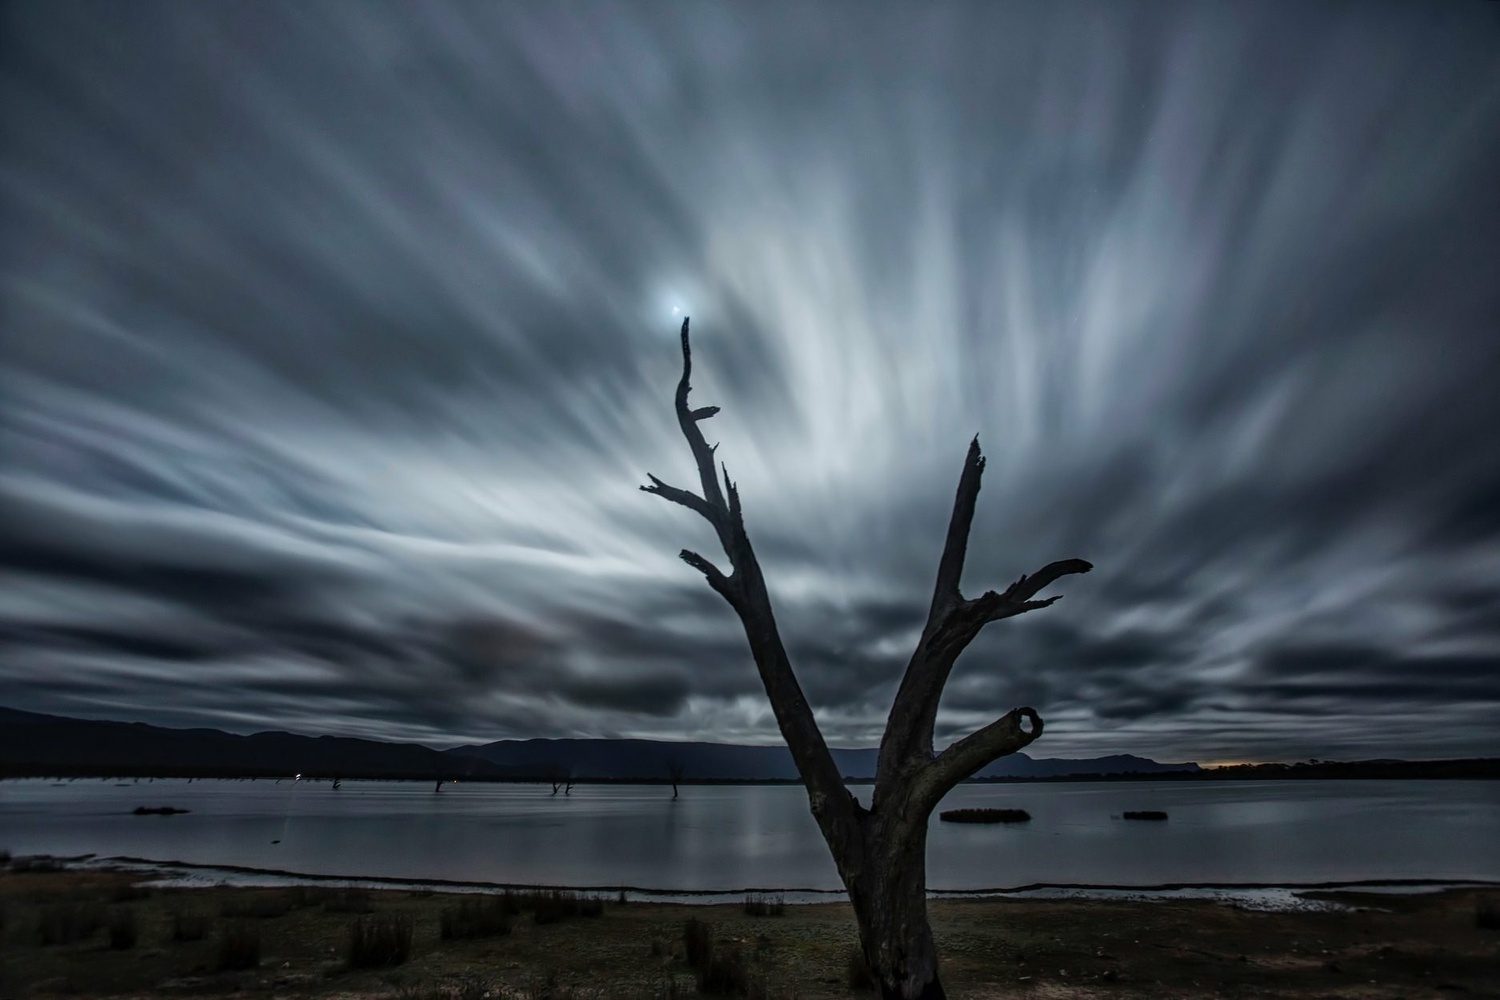 Moving Sky by Peter Cannon